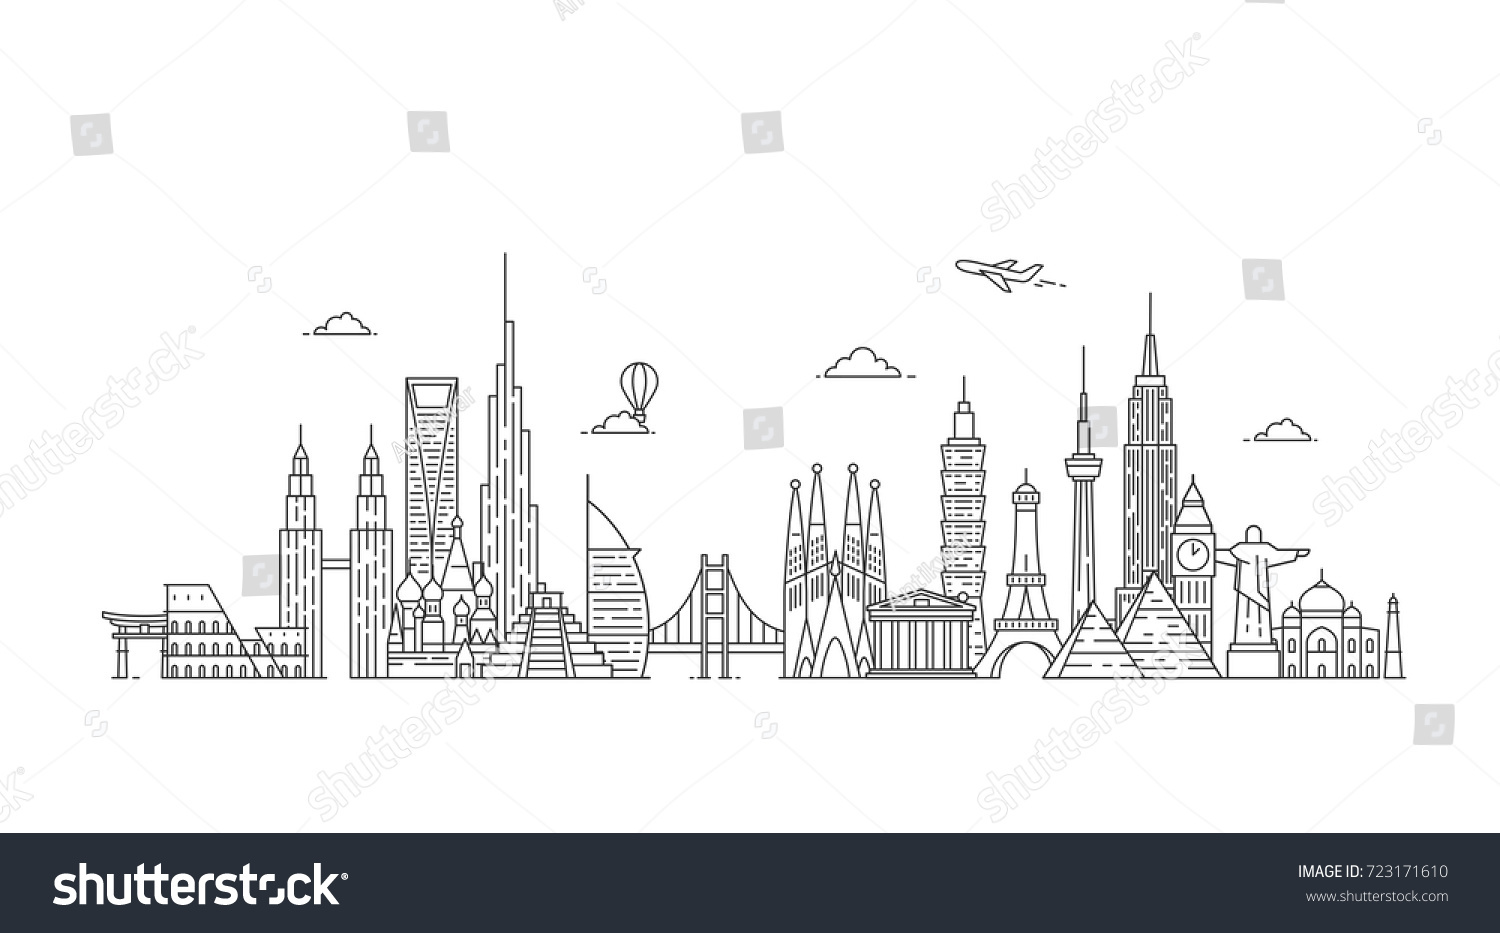 World skyline. Travel and tourism background. Famous buildings and monuments.